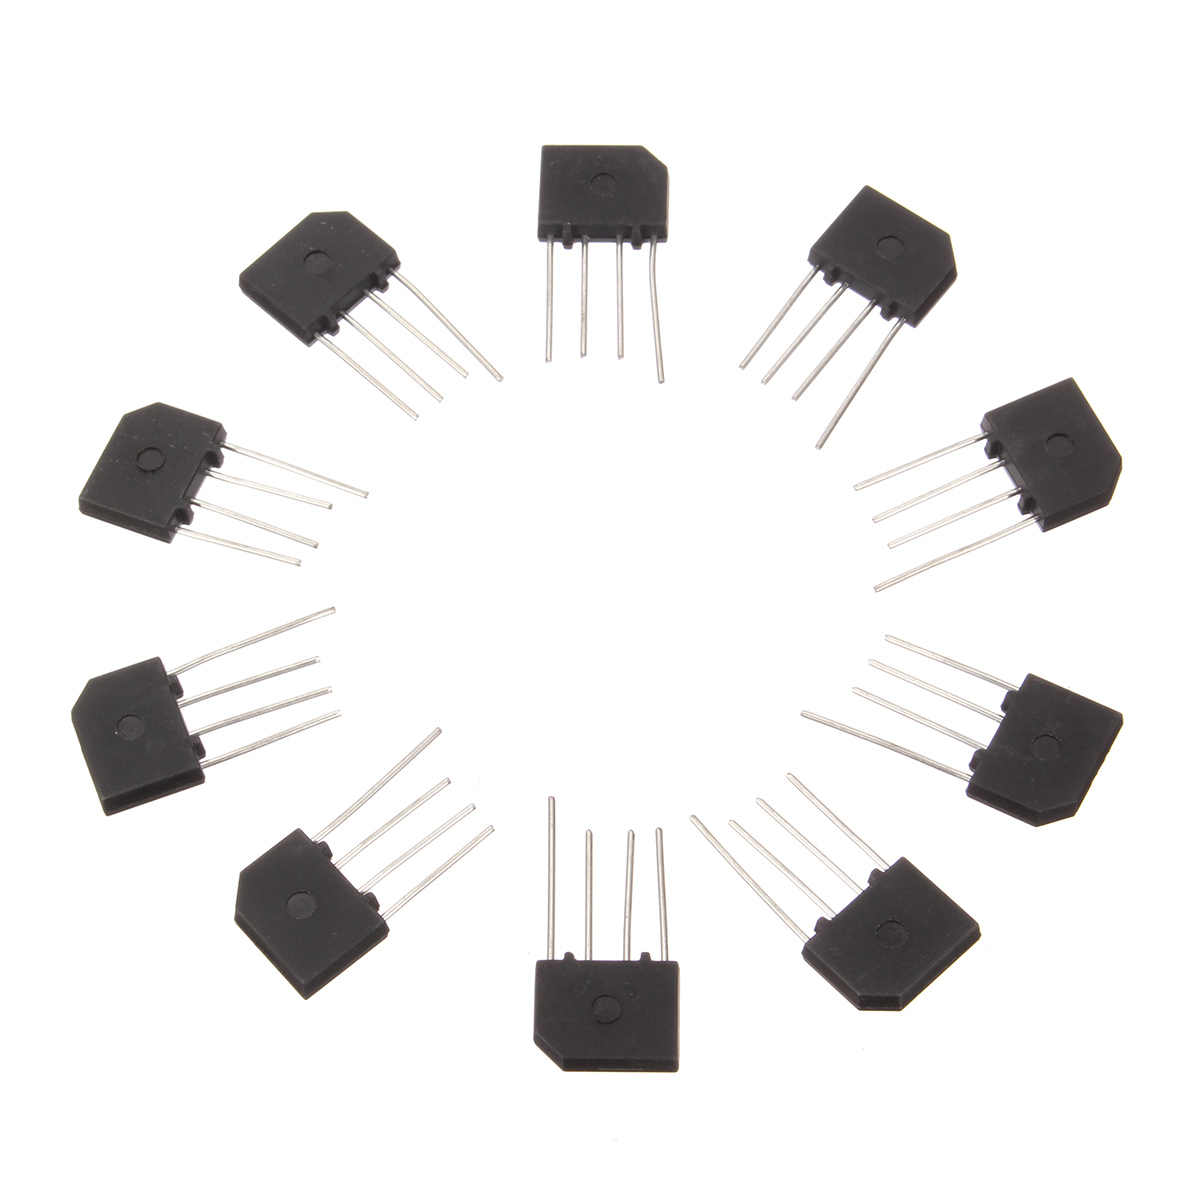 10PCS 3A 1000V KBP307 diode bridge rectifier KBP 307 power diode electronica componentes